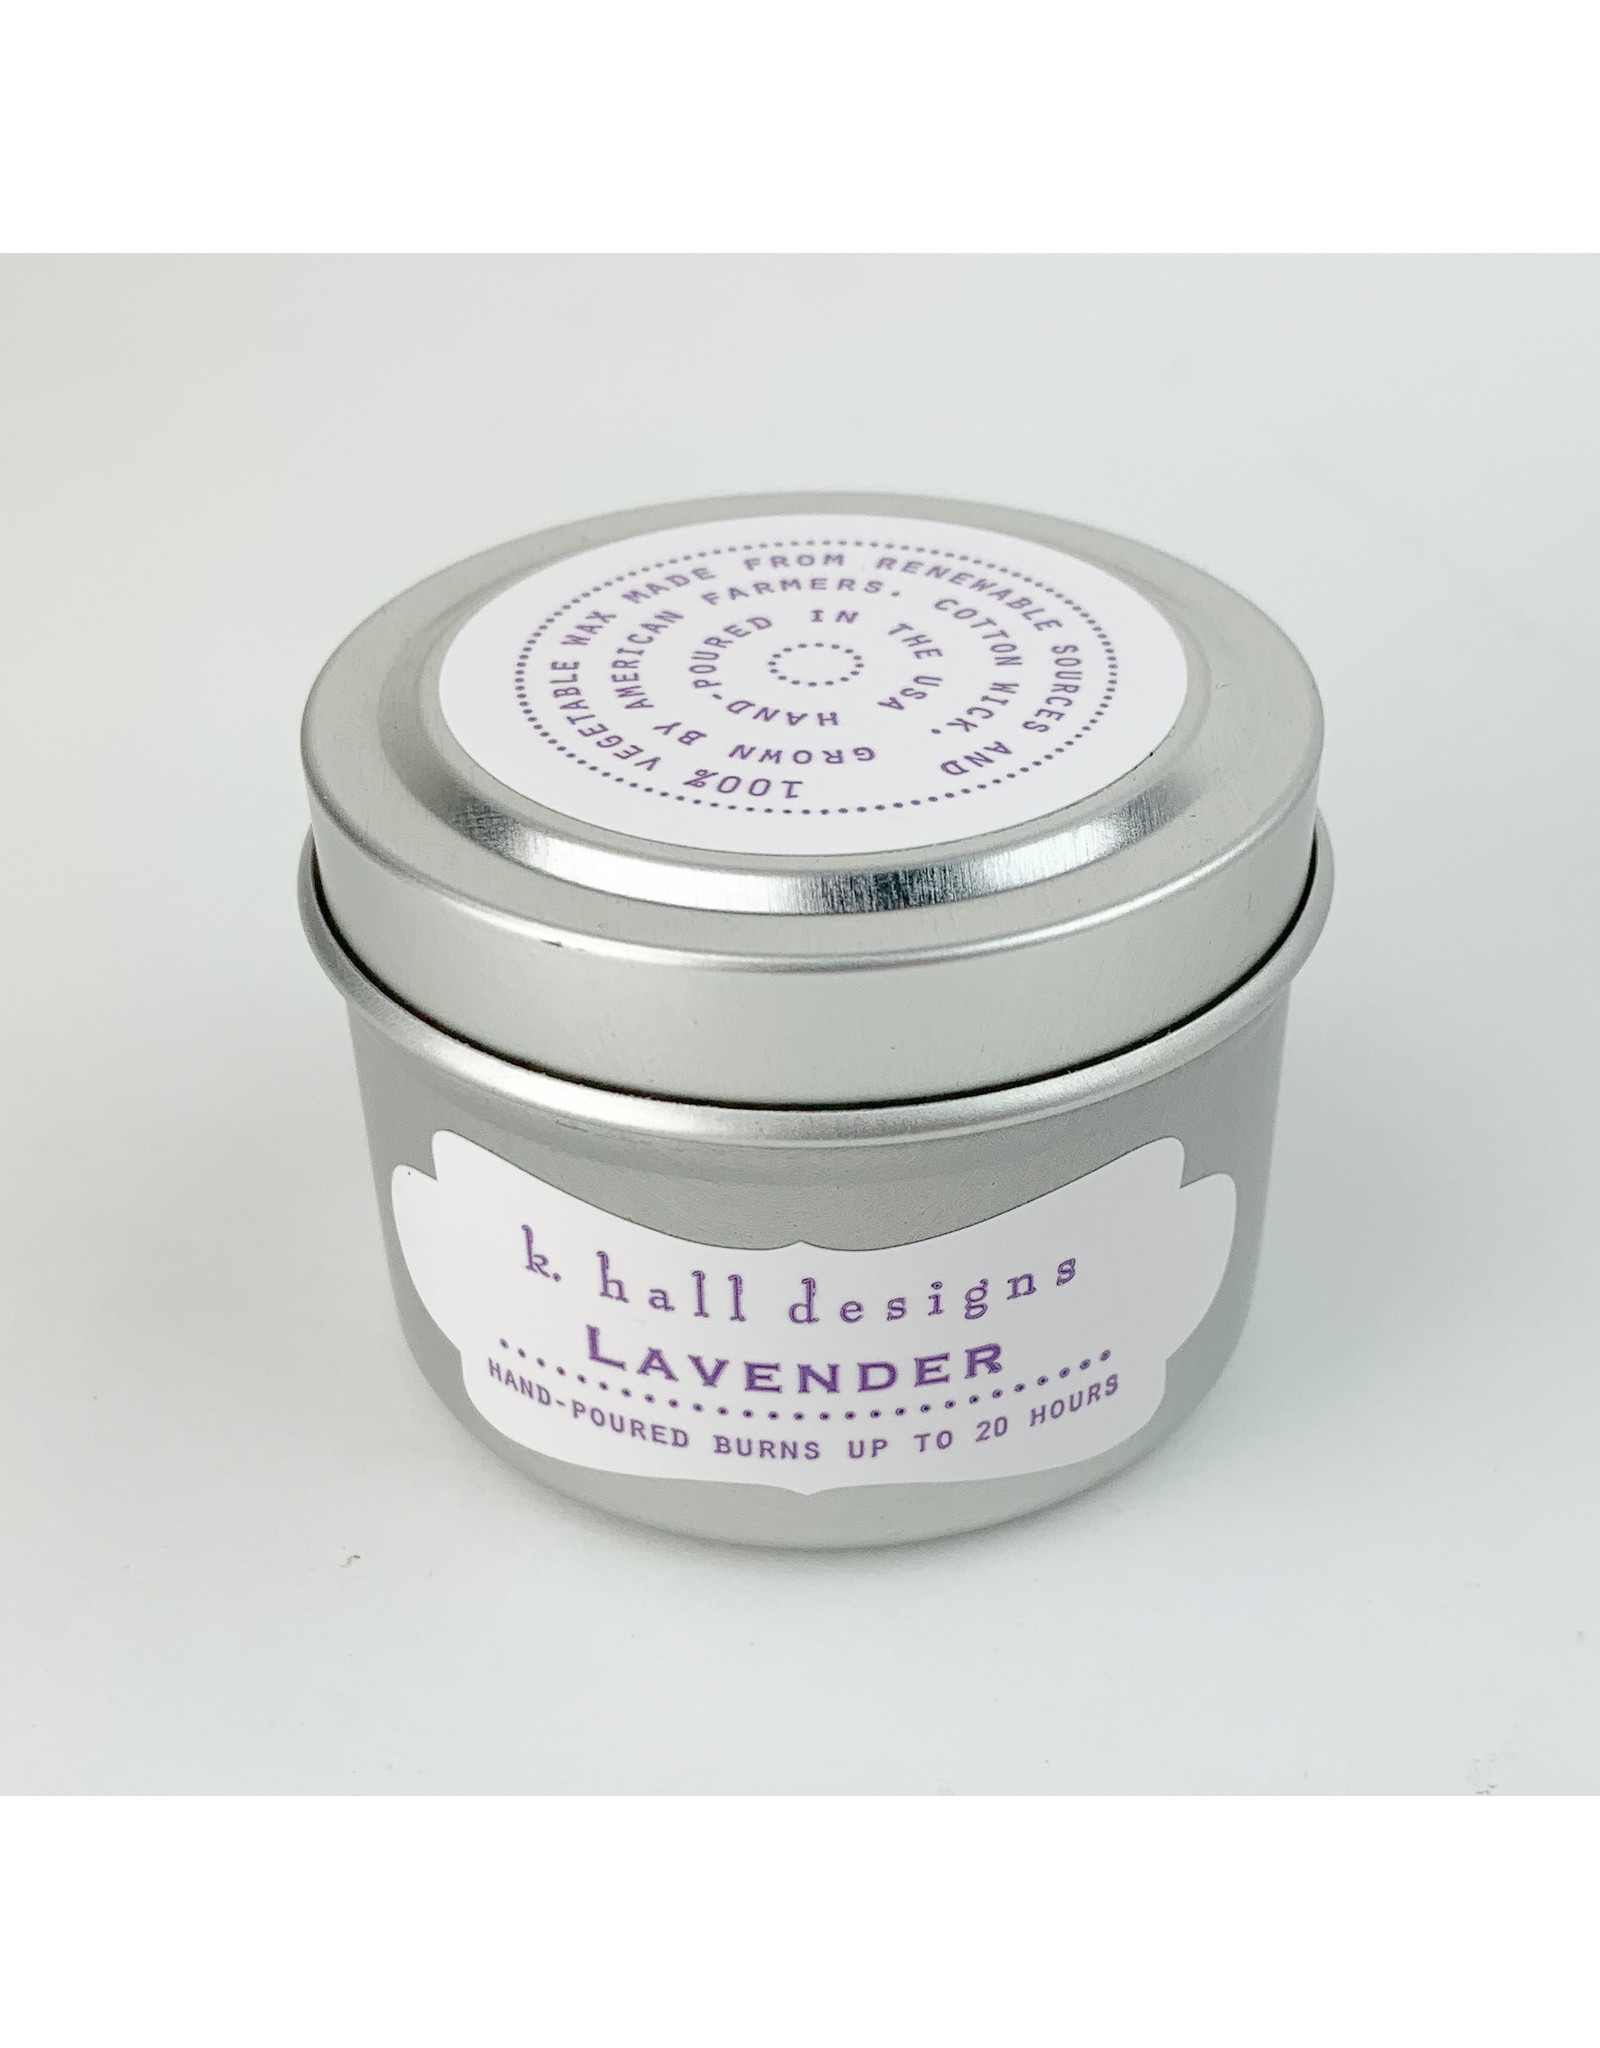 K. Hall Lavender travel candle